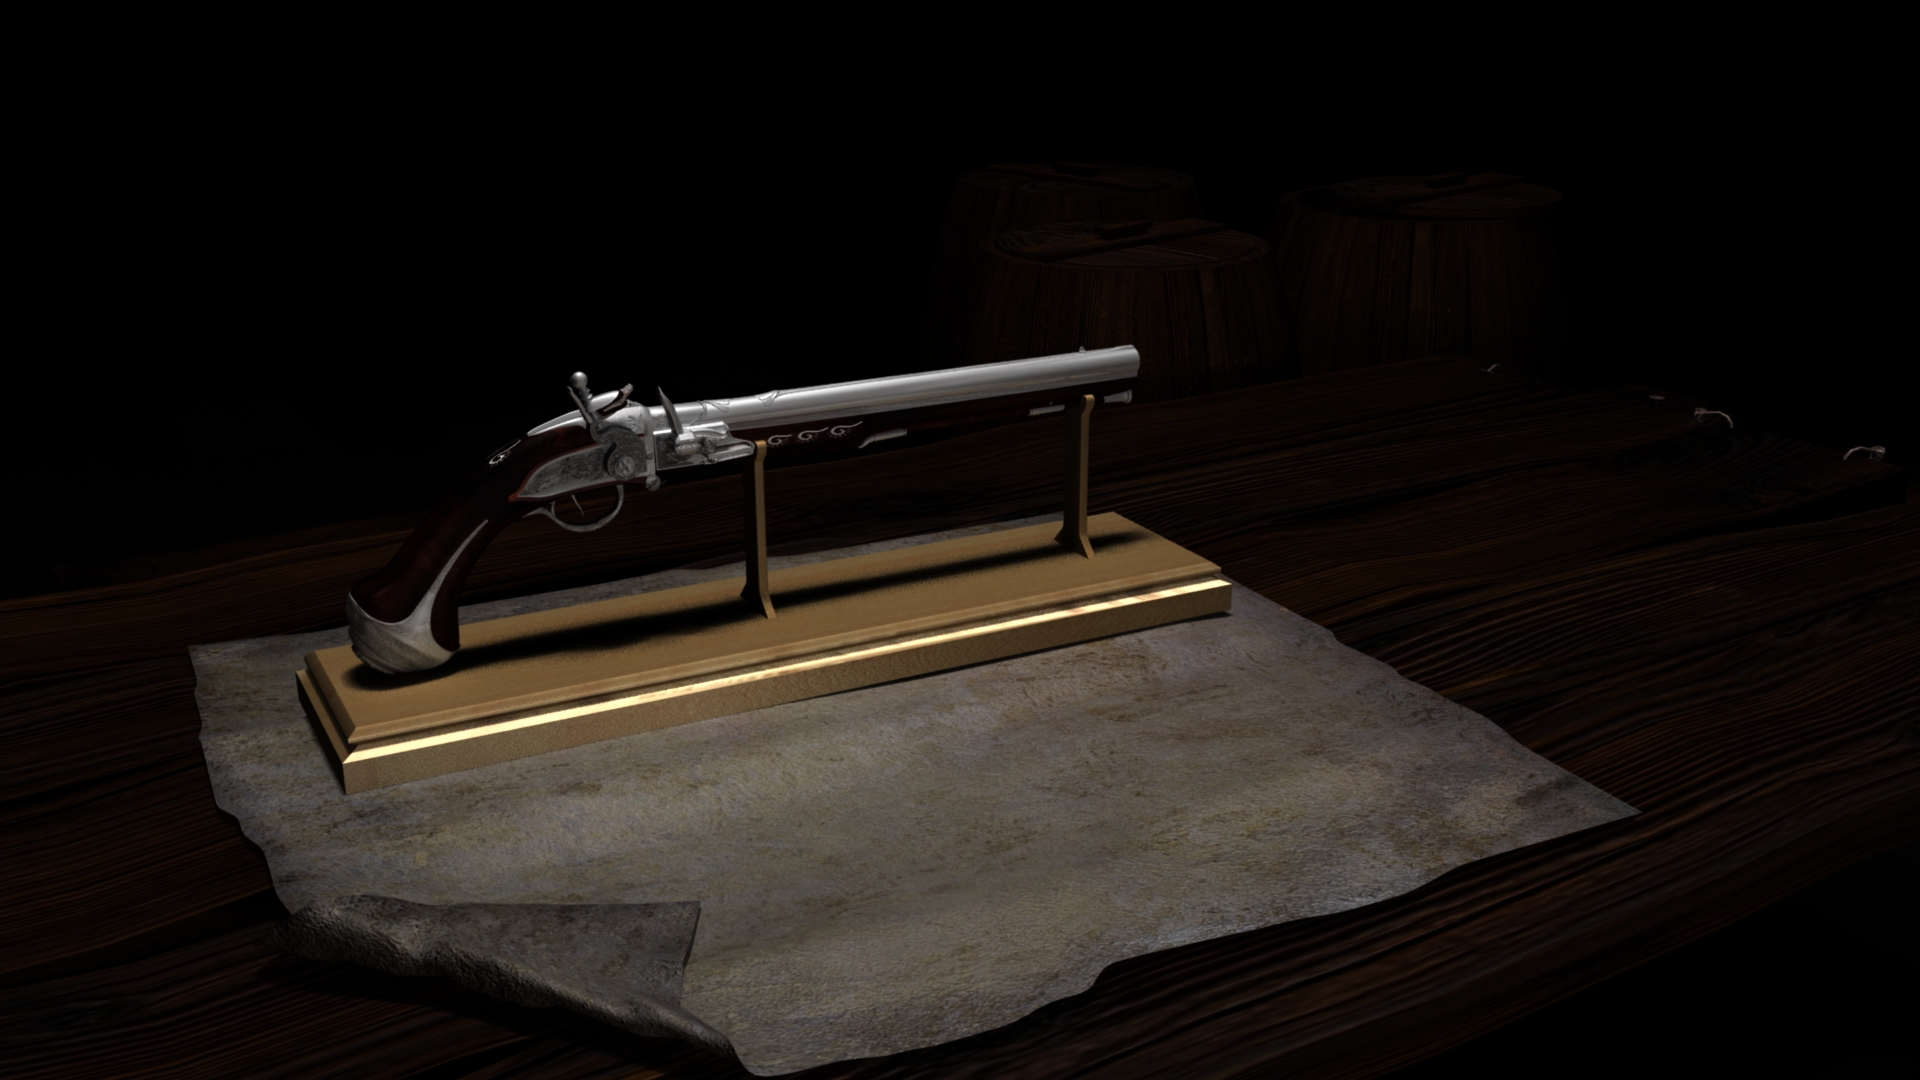 18th century breech gun in Maya mental ray image